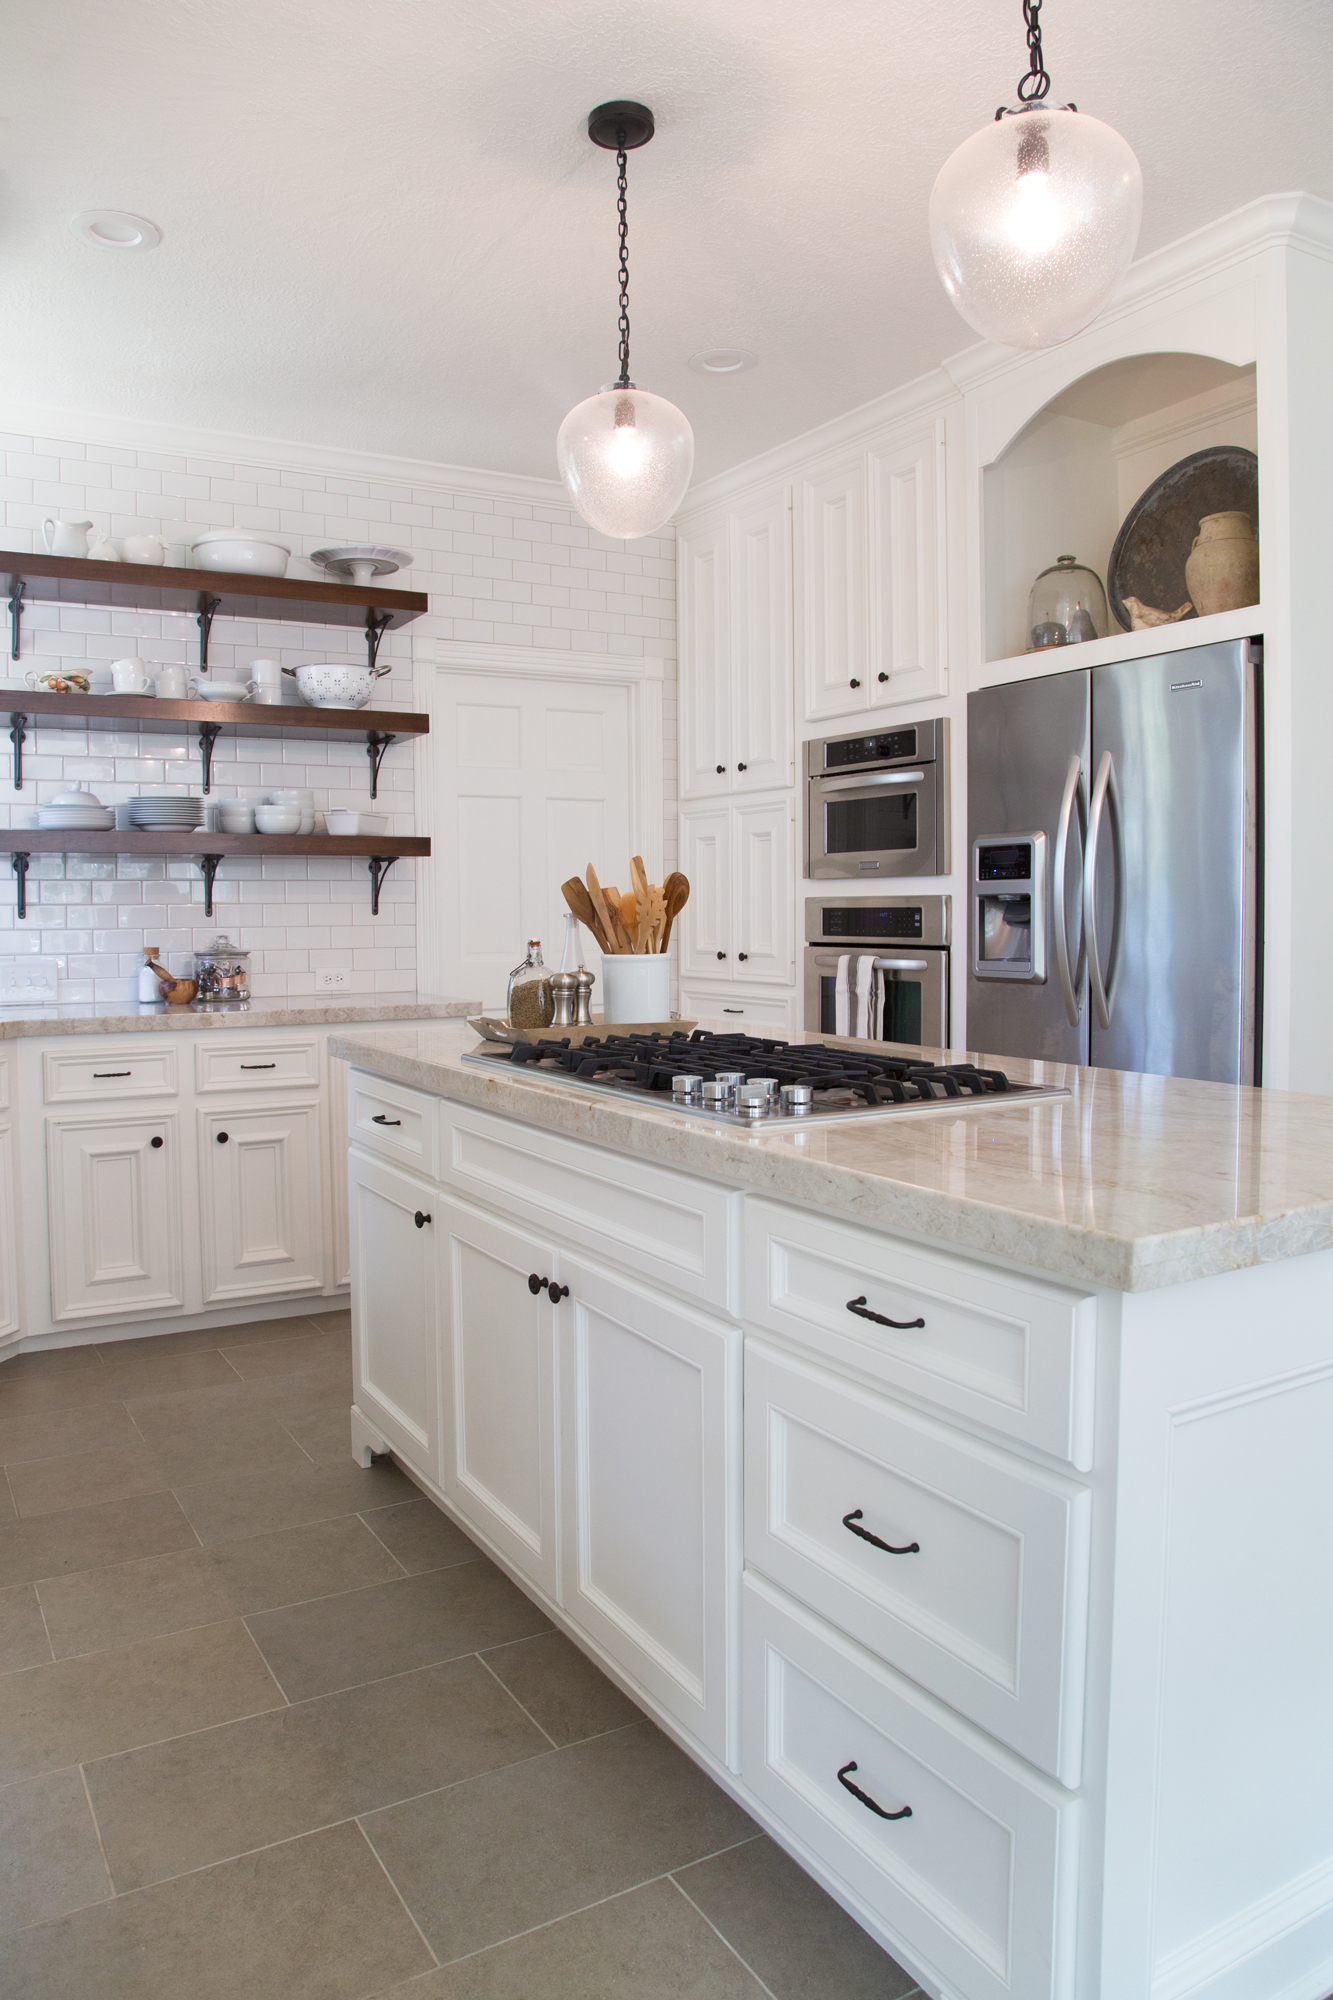 Kitchen Remodel - Open shelving, subway tile wall, new island and frig wall cabinetry, Designer: Carla Aston